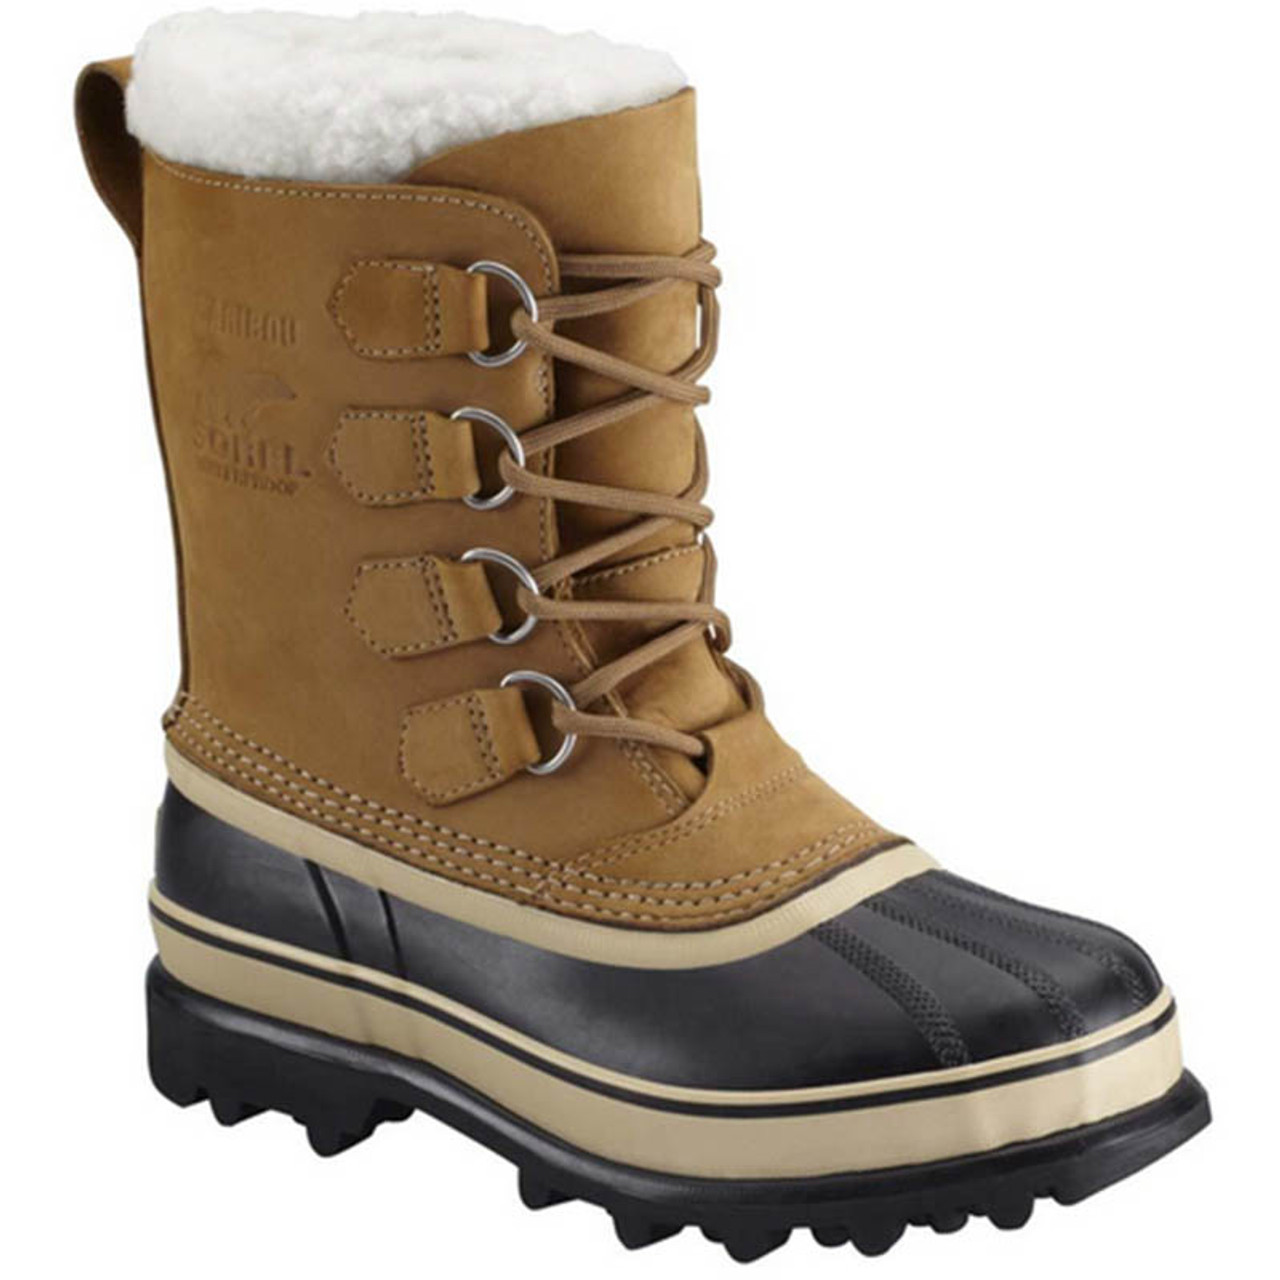 CARIBOU Winter Snow Boots